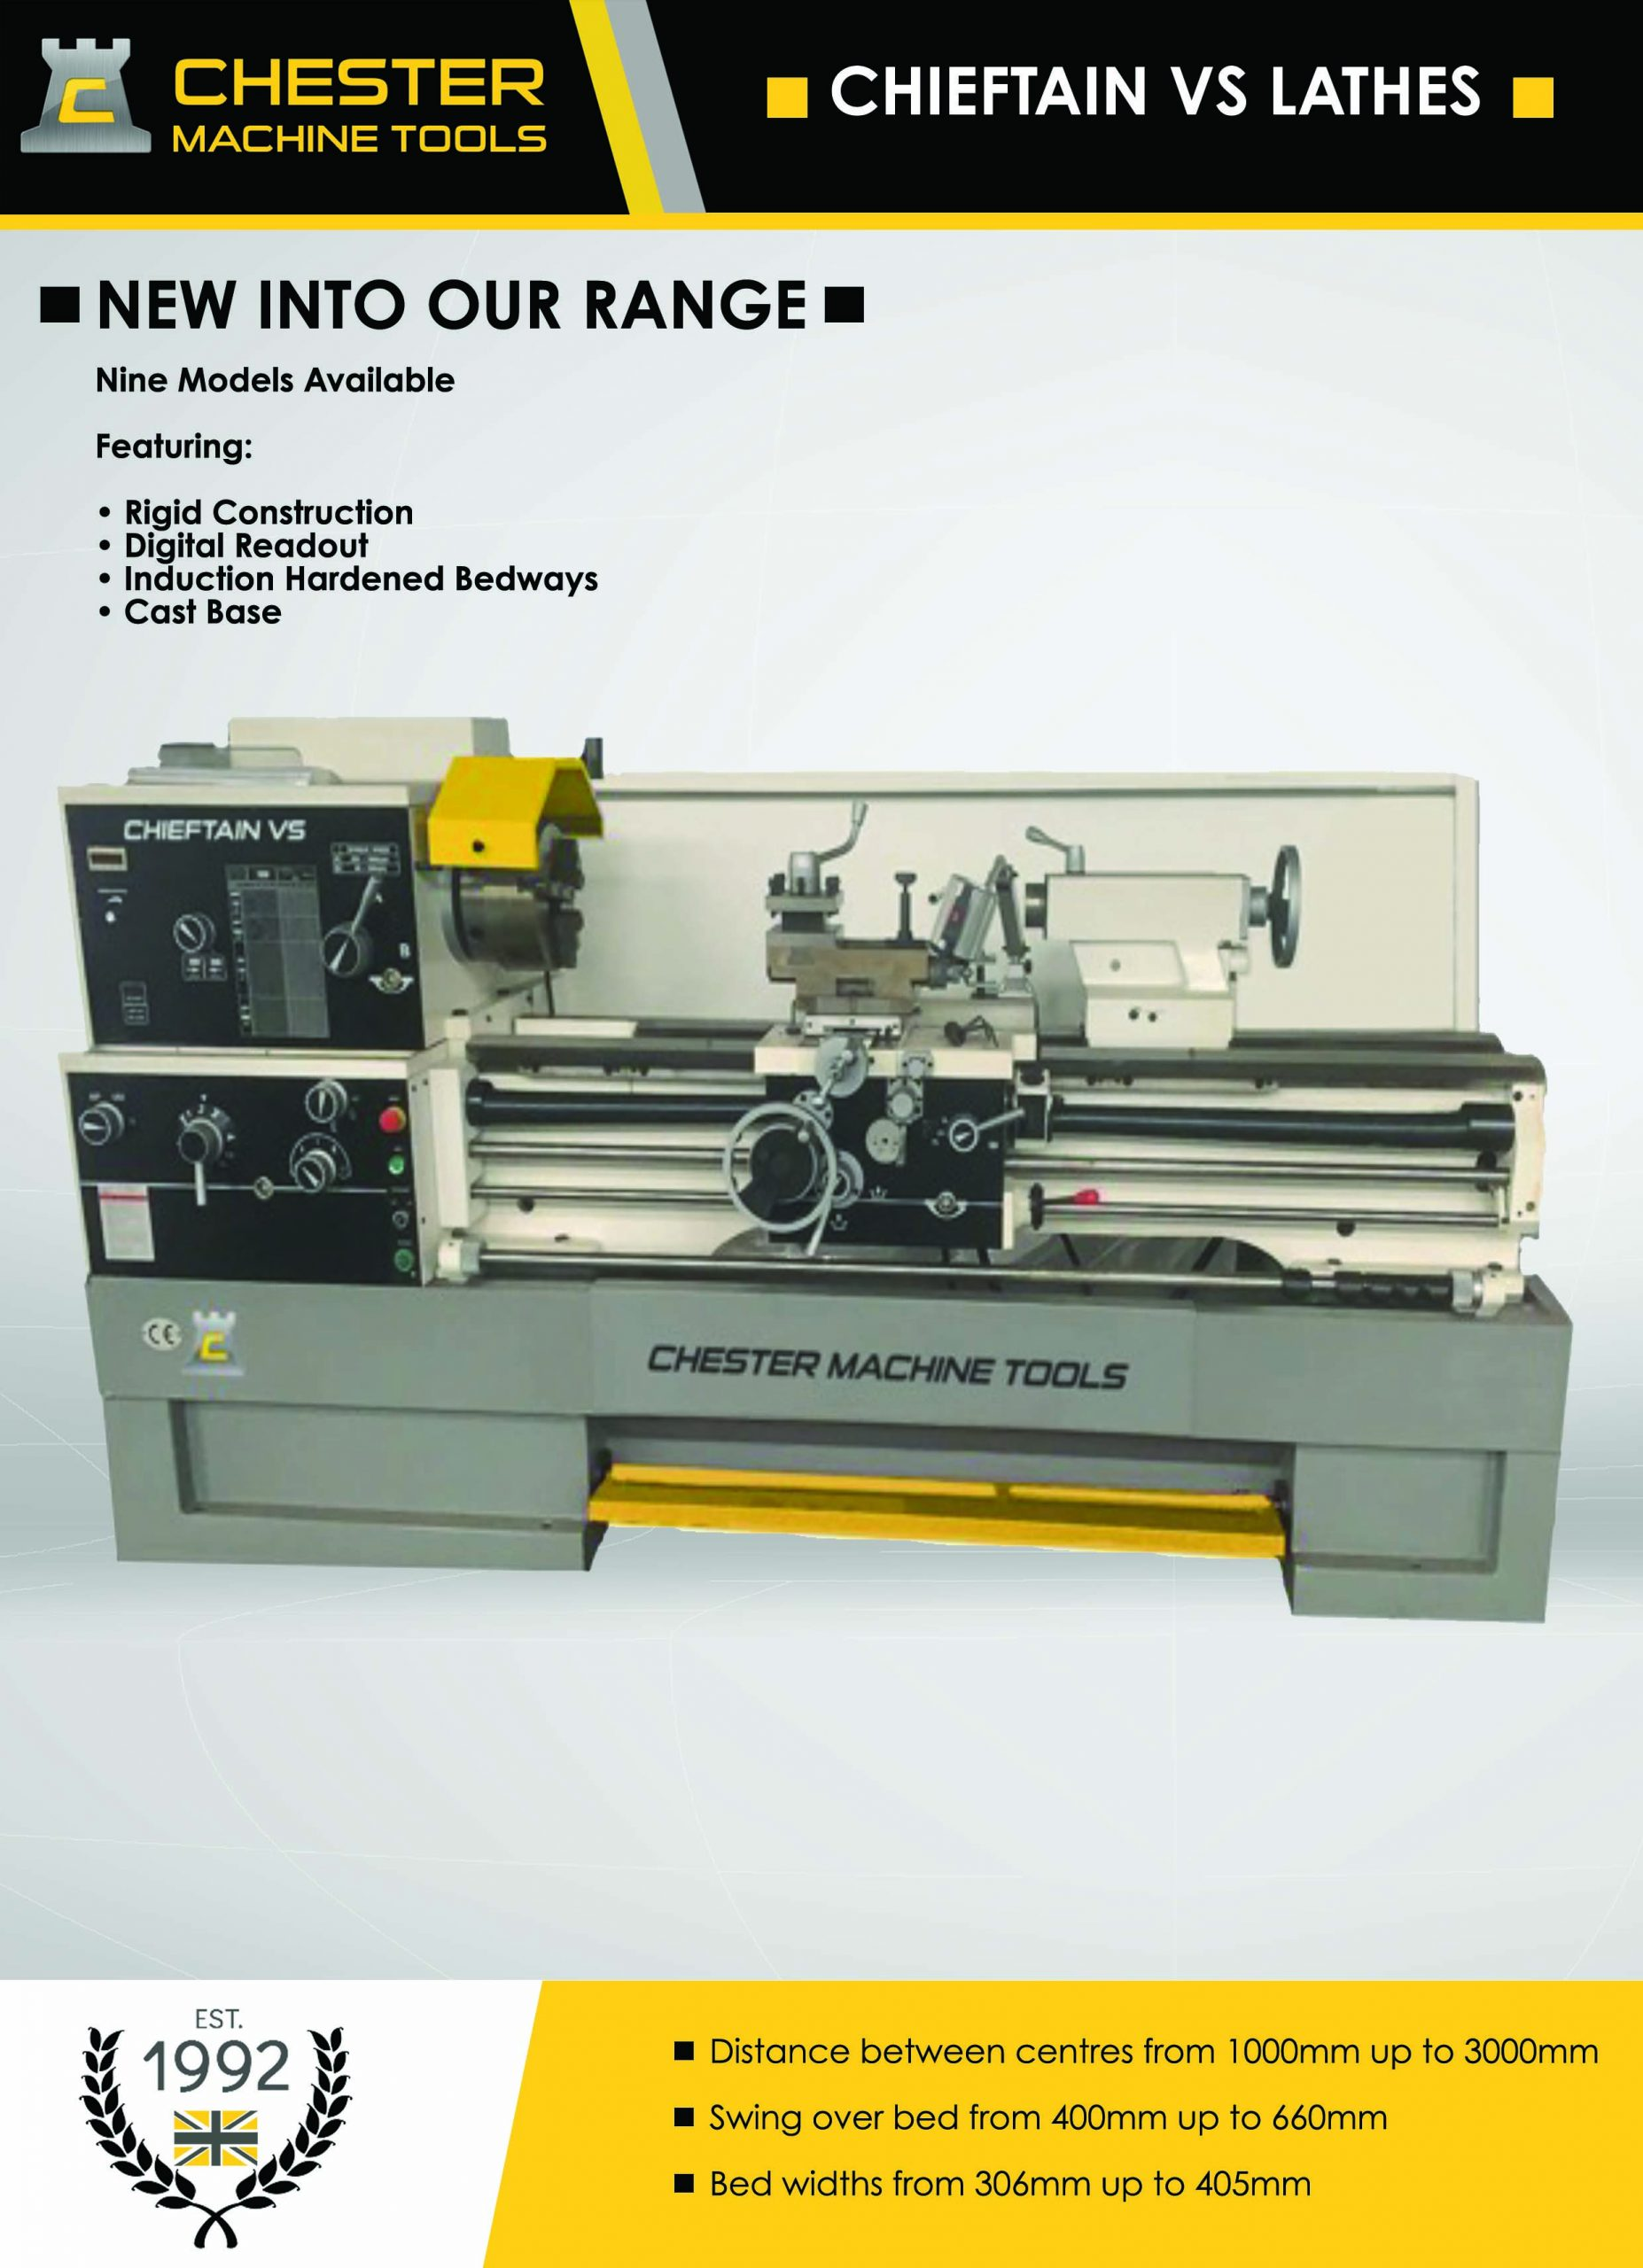 Precision built industrial metal working manual lathes